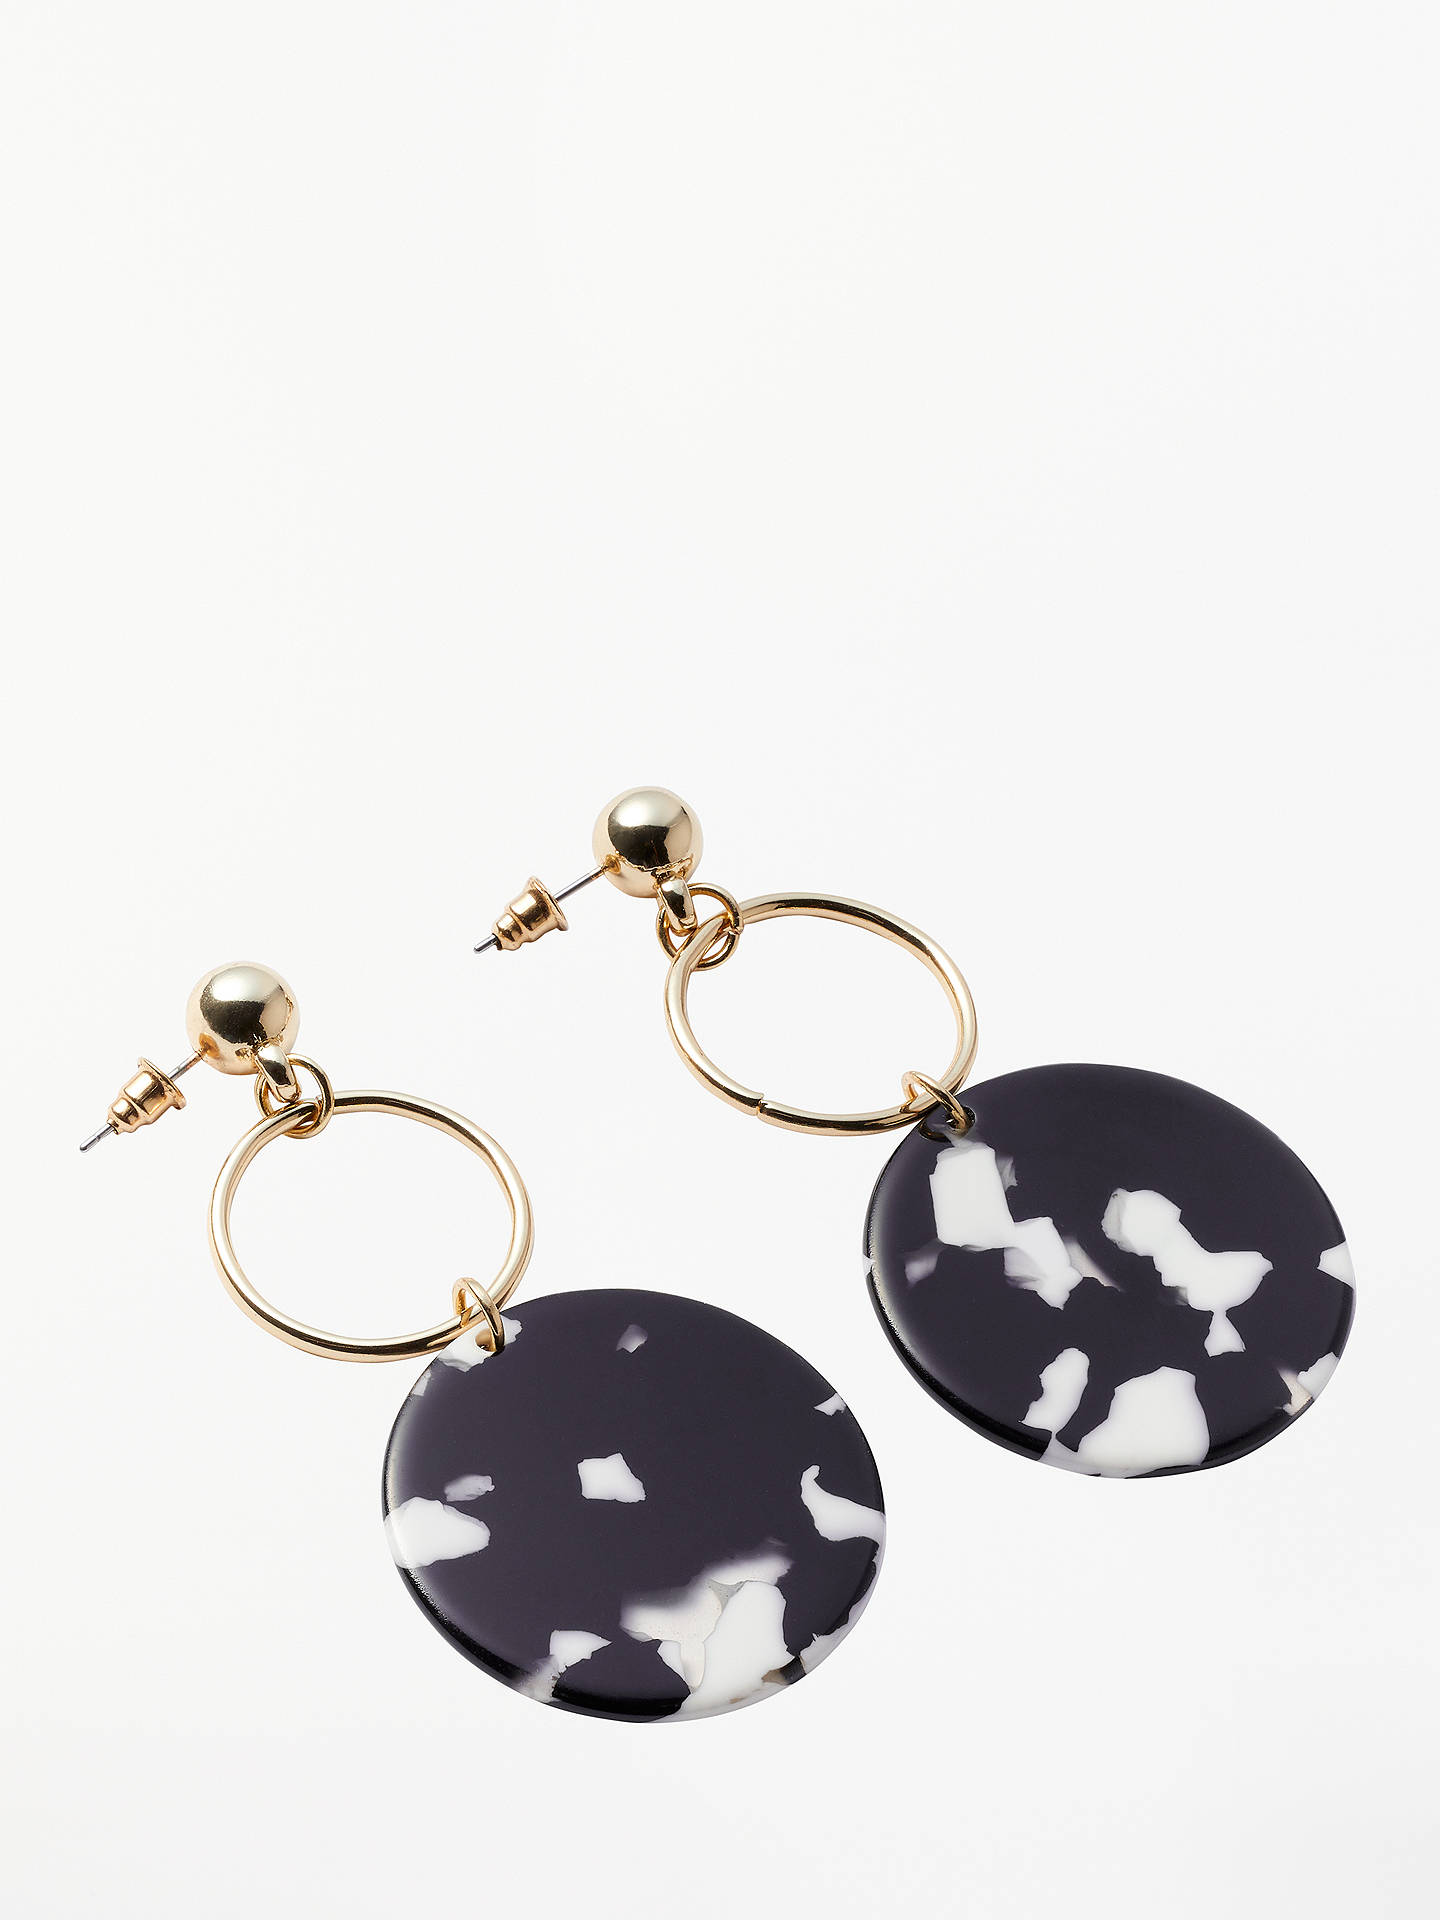 BuyJohn Lewis & Partners Circle Drop Earrings, Black/White Online at johnlewis.com